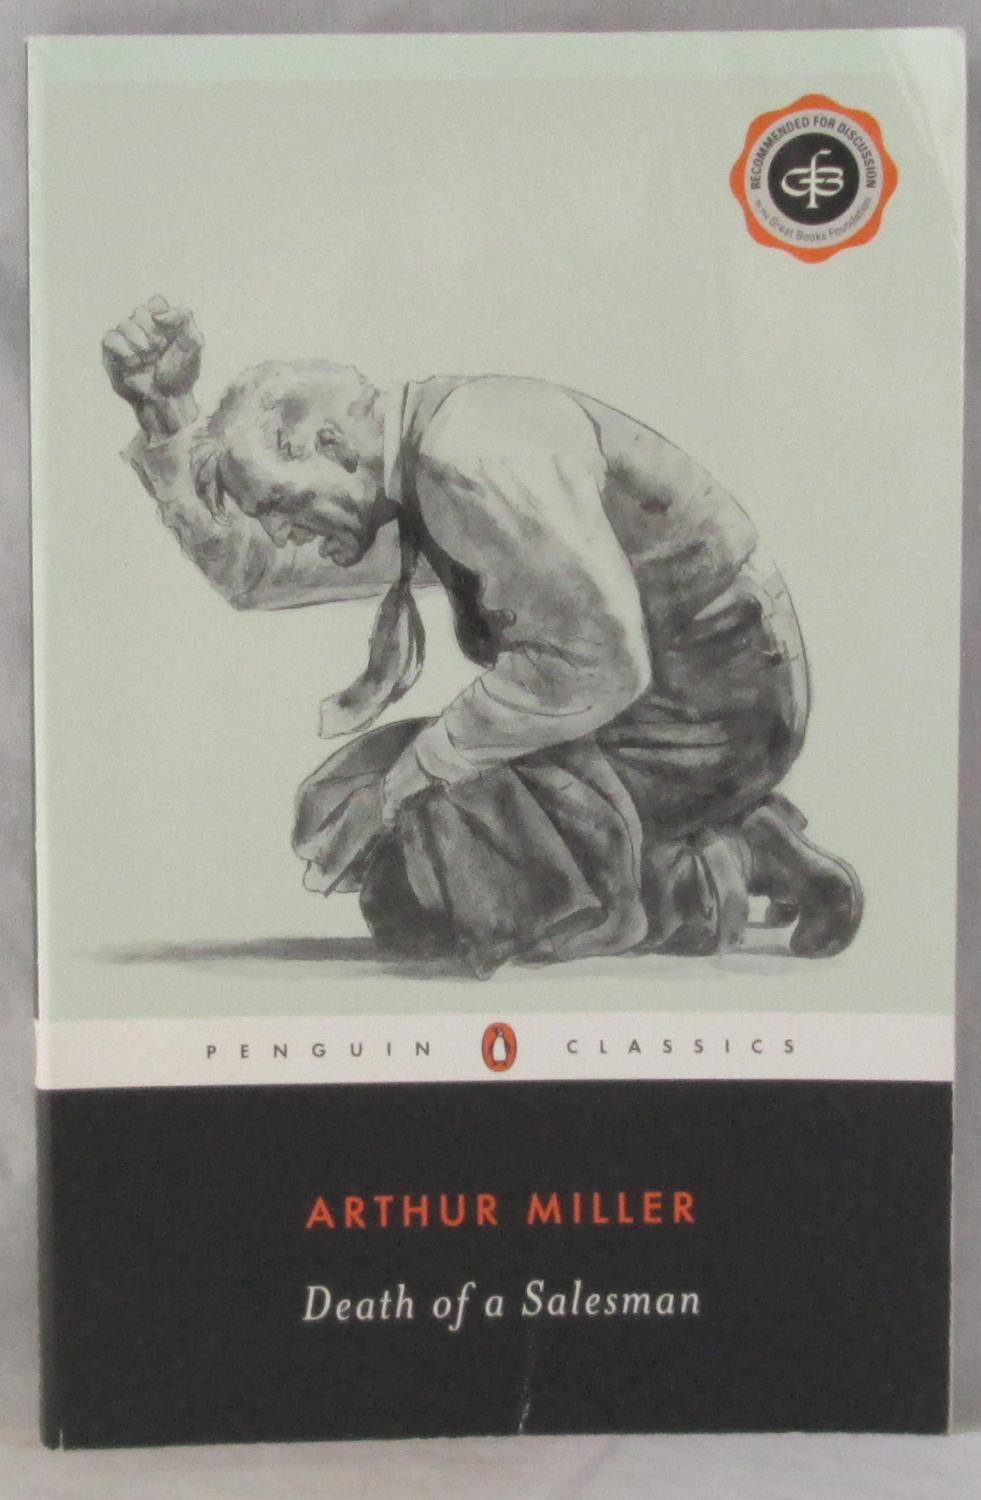 a summary of the book death of a salesman by arthur miller Death of a salesman summary - death of a salesman by arthur miller summary and analysis.